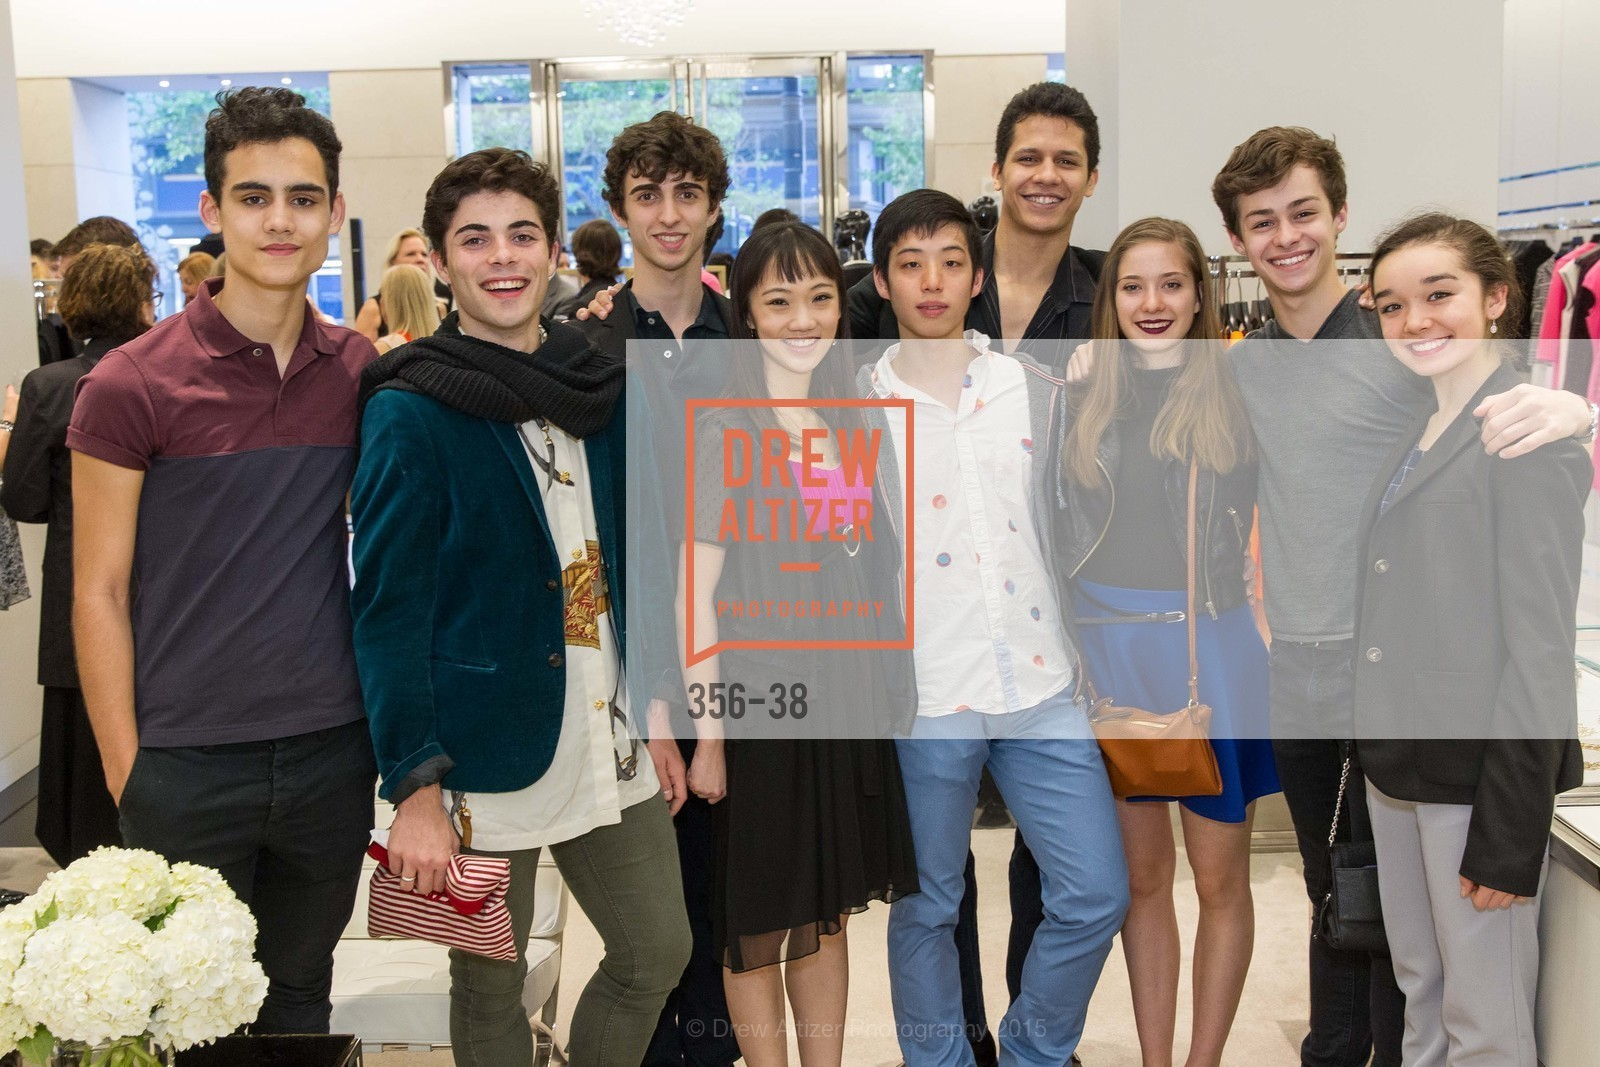 Daniel Domench, Davide Occhibinti, Chisako Oga, Haruo Niniya, Adriel Diniz, Anastasia Kubanda, Blake Kessler, Natasha Sheehan, Daniel Mccormickk, SF BALLET at St. John Boutique, Four Seasons Hotel. 767A Market Street, Suite B, April 15th, 2015,Drew Altizer, Drew Altizer Photography, full-service agency, private events, San Francisco photographer, photographer california